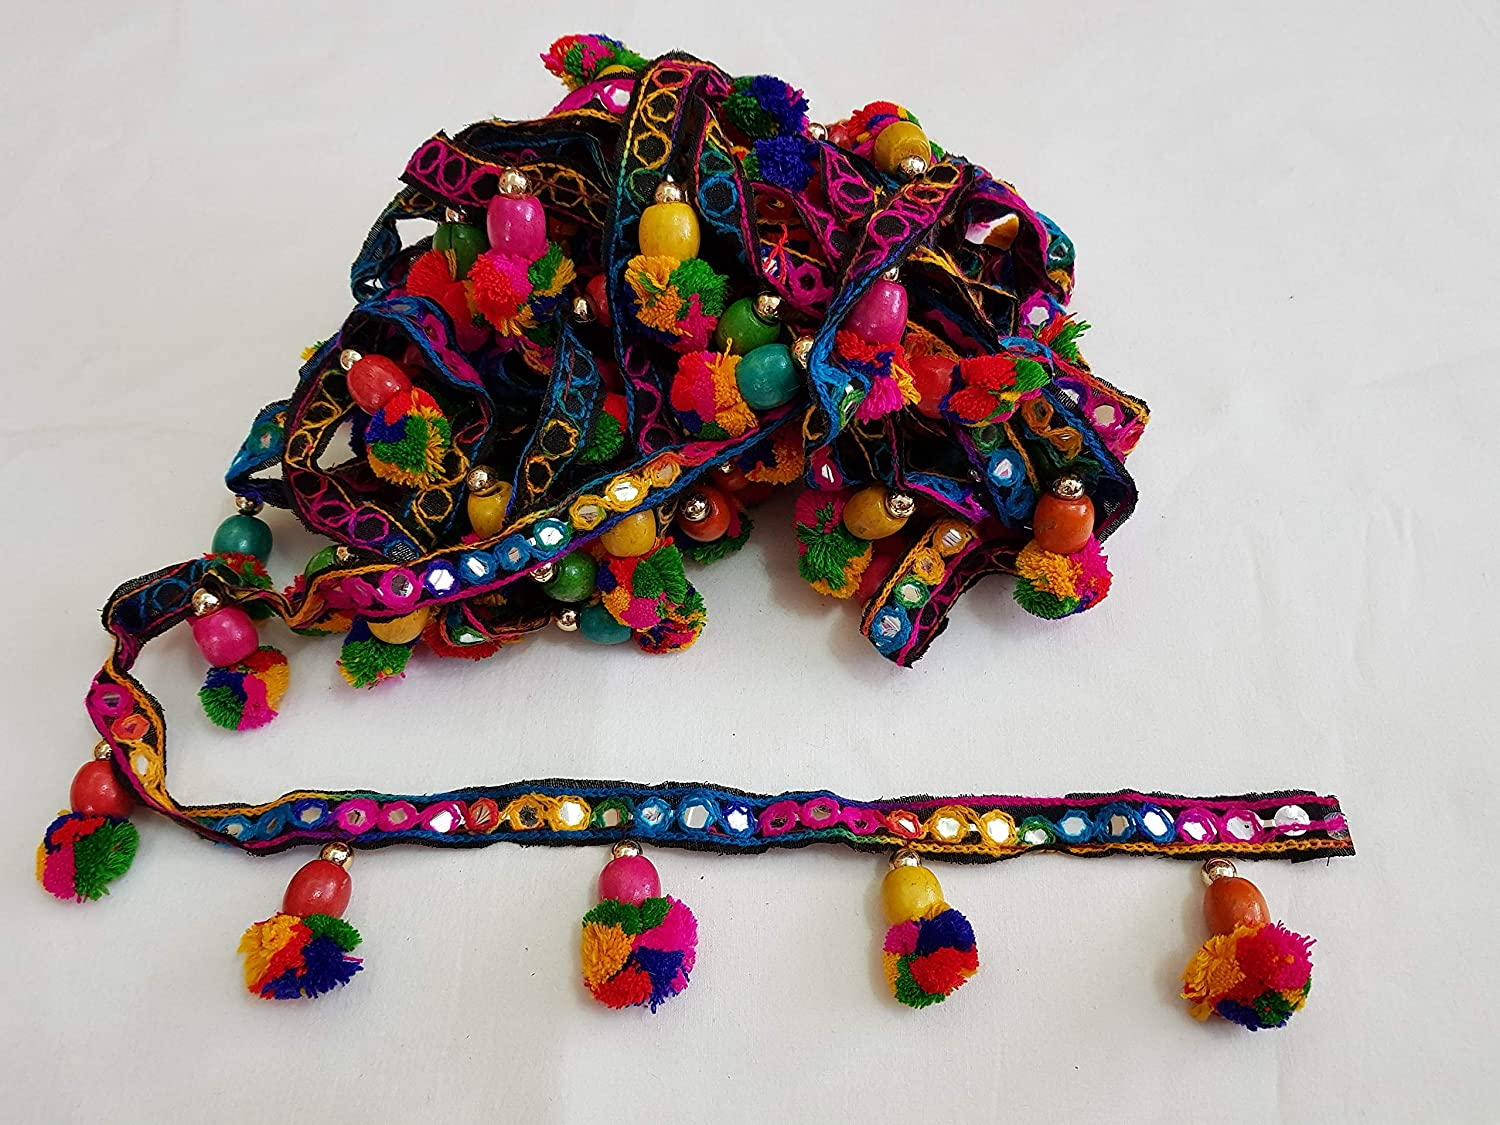 2 METERS - Rainbow Tassel POM POM and WOOD Bead trim handcrafted fringe fabric lace sewing border trim new for craft - Plastic mirror Lace